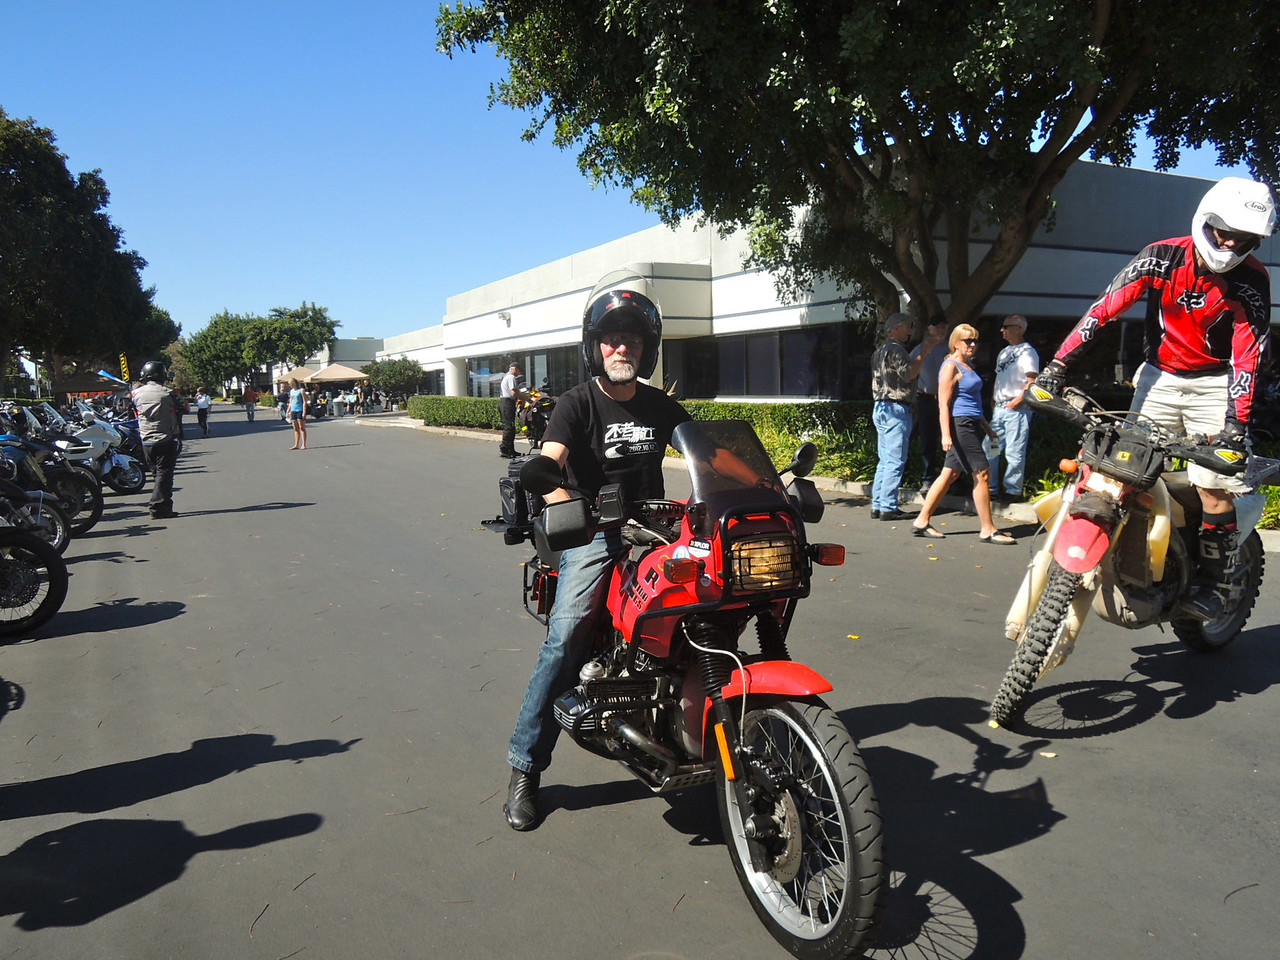 Norcal member, Chuck Brown, participates in the slow race.